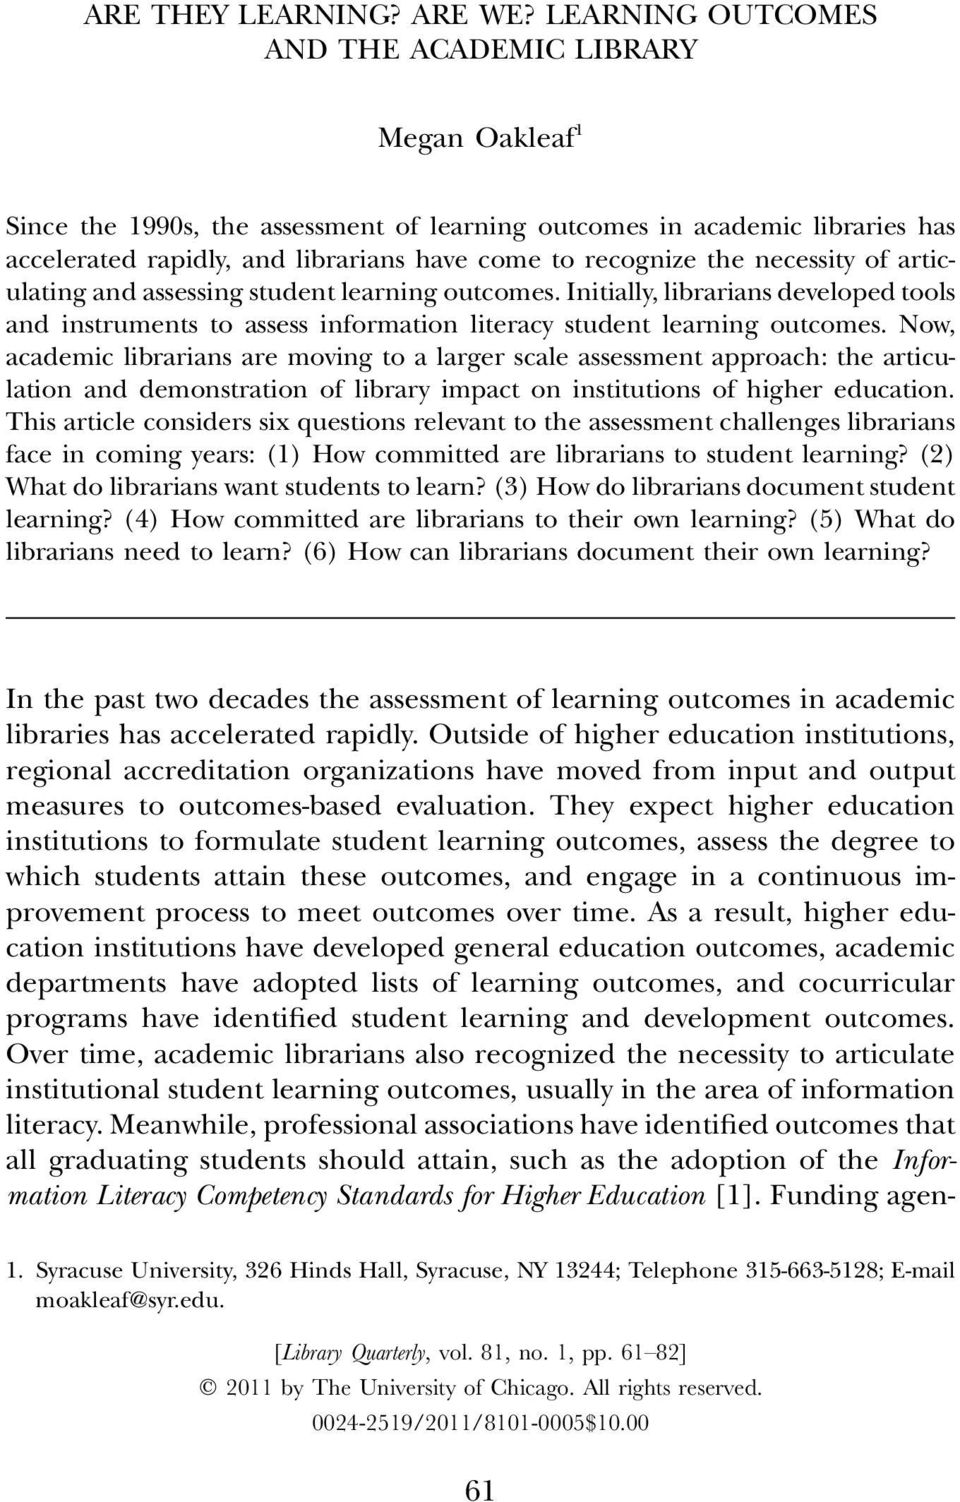 the necessity of articulating and assessing student learning outcomes. Initially, librarians developed tools and instruments to assess information literacy student learning outcomes.